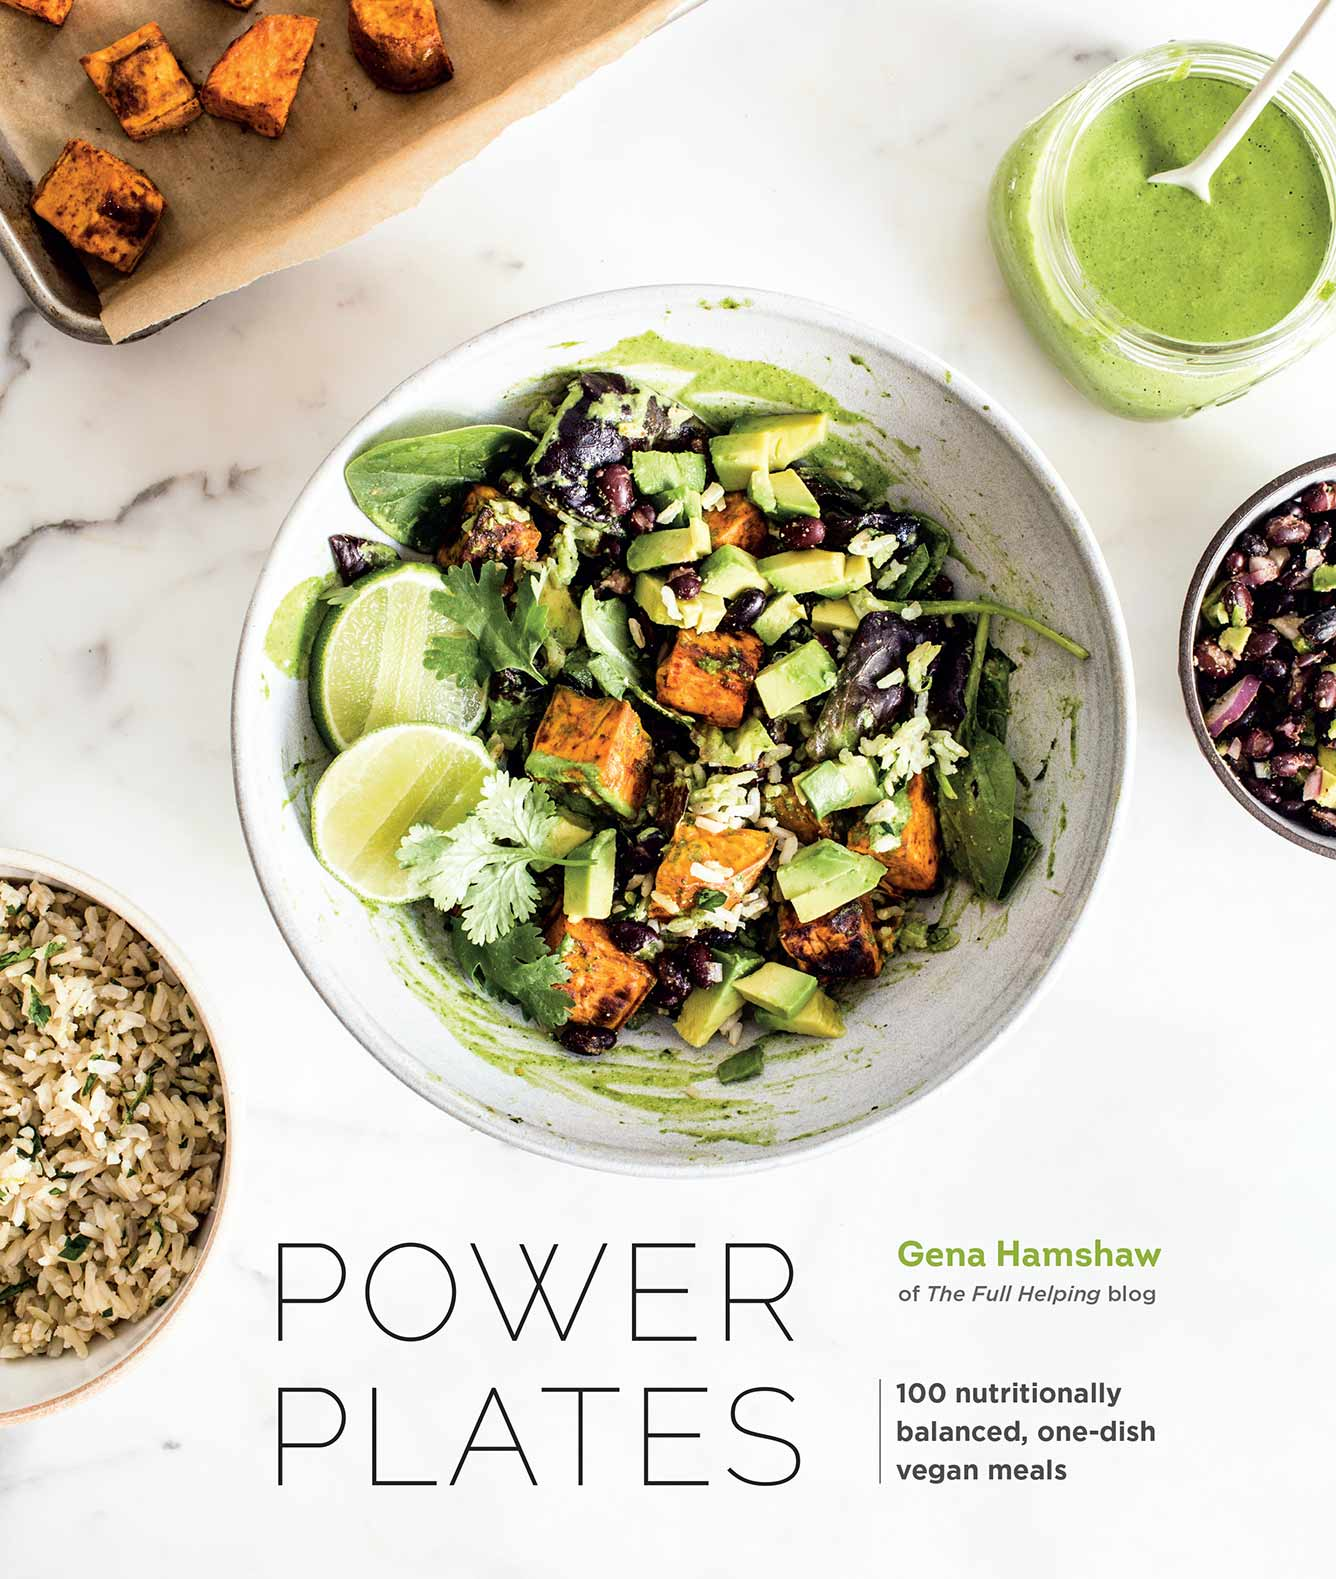 Gena Hamshaw's latest book Power Plates makes eating well not only attainable but utterly delicious with 100 nutricious plant-based recipes.